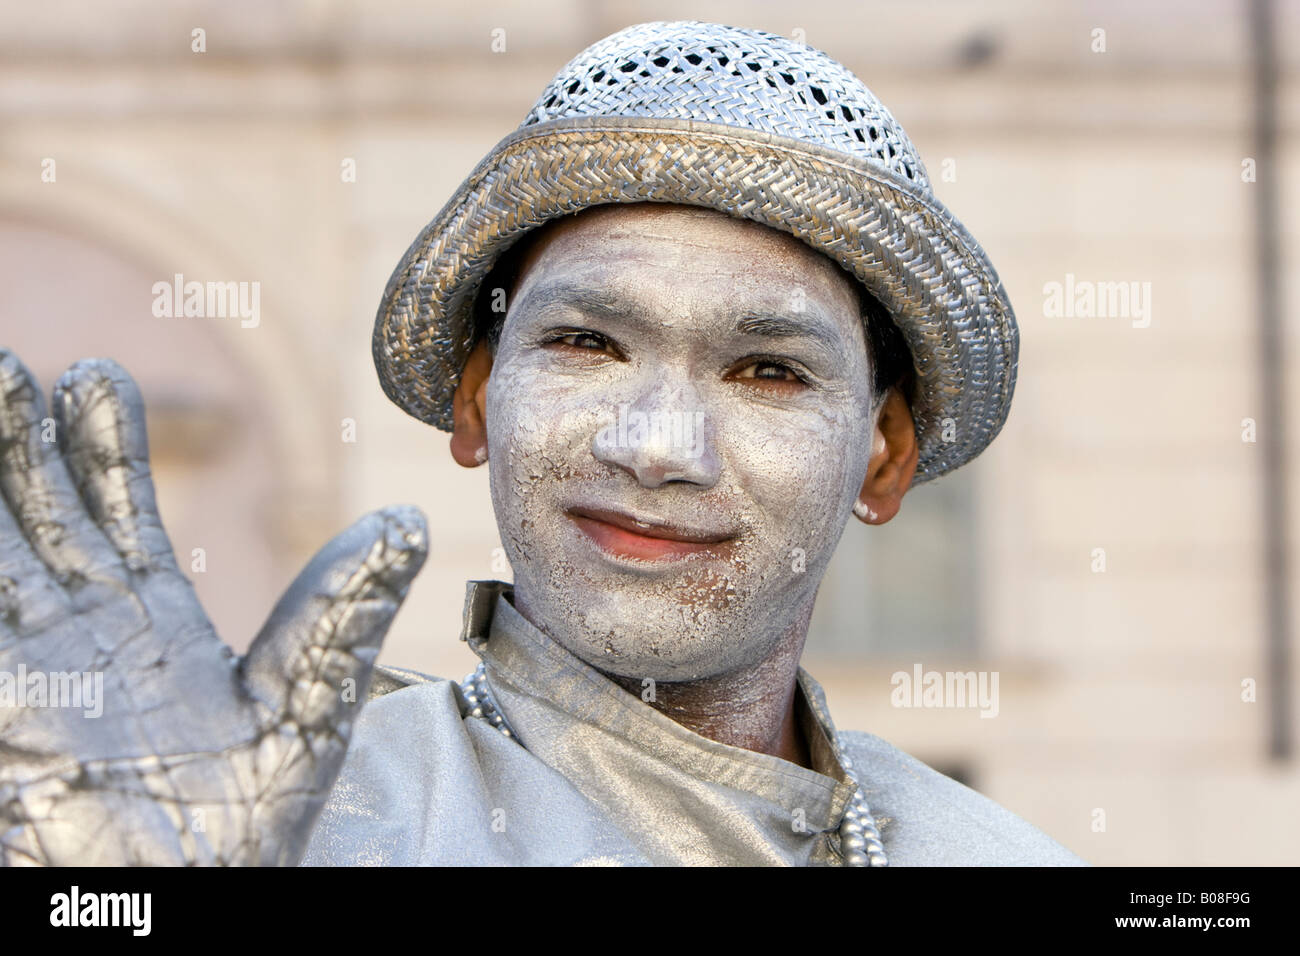 Mime Actor in the streets of Rome Italy - Stock Image